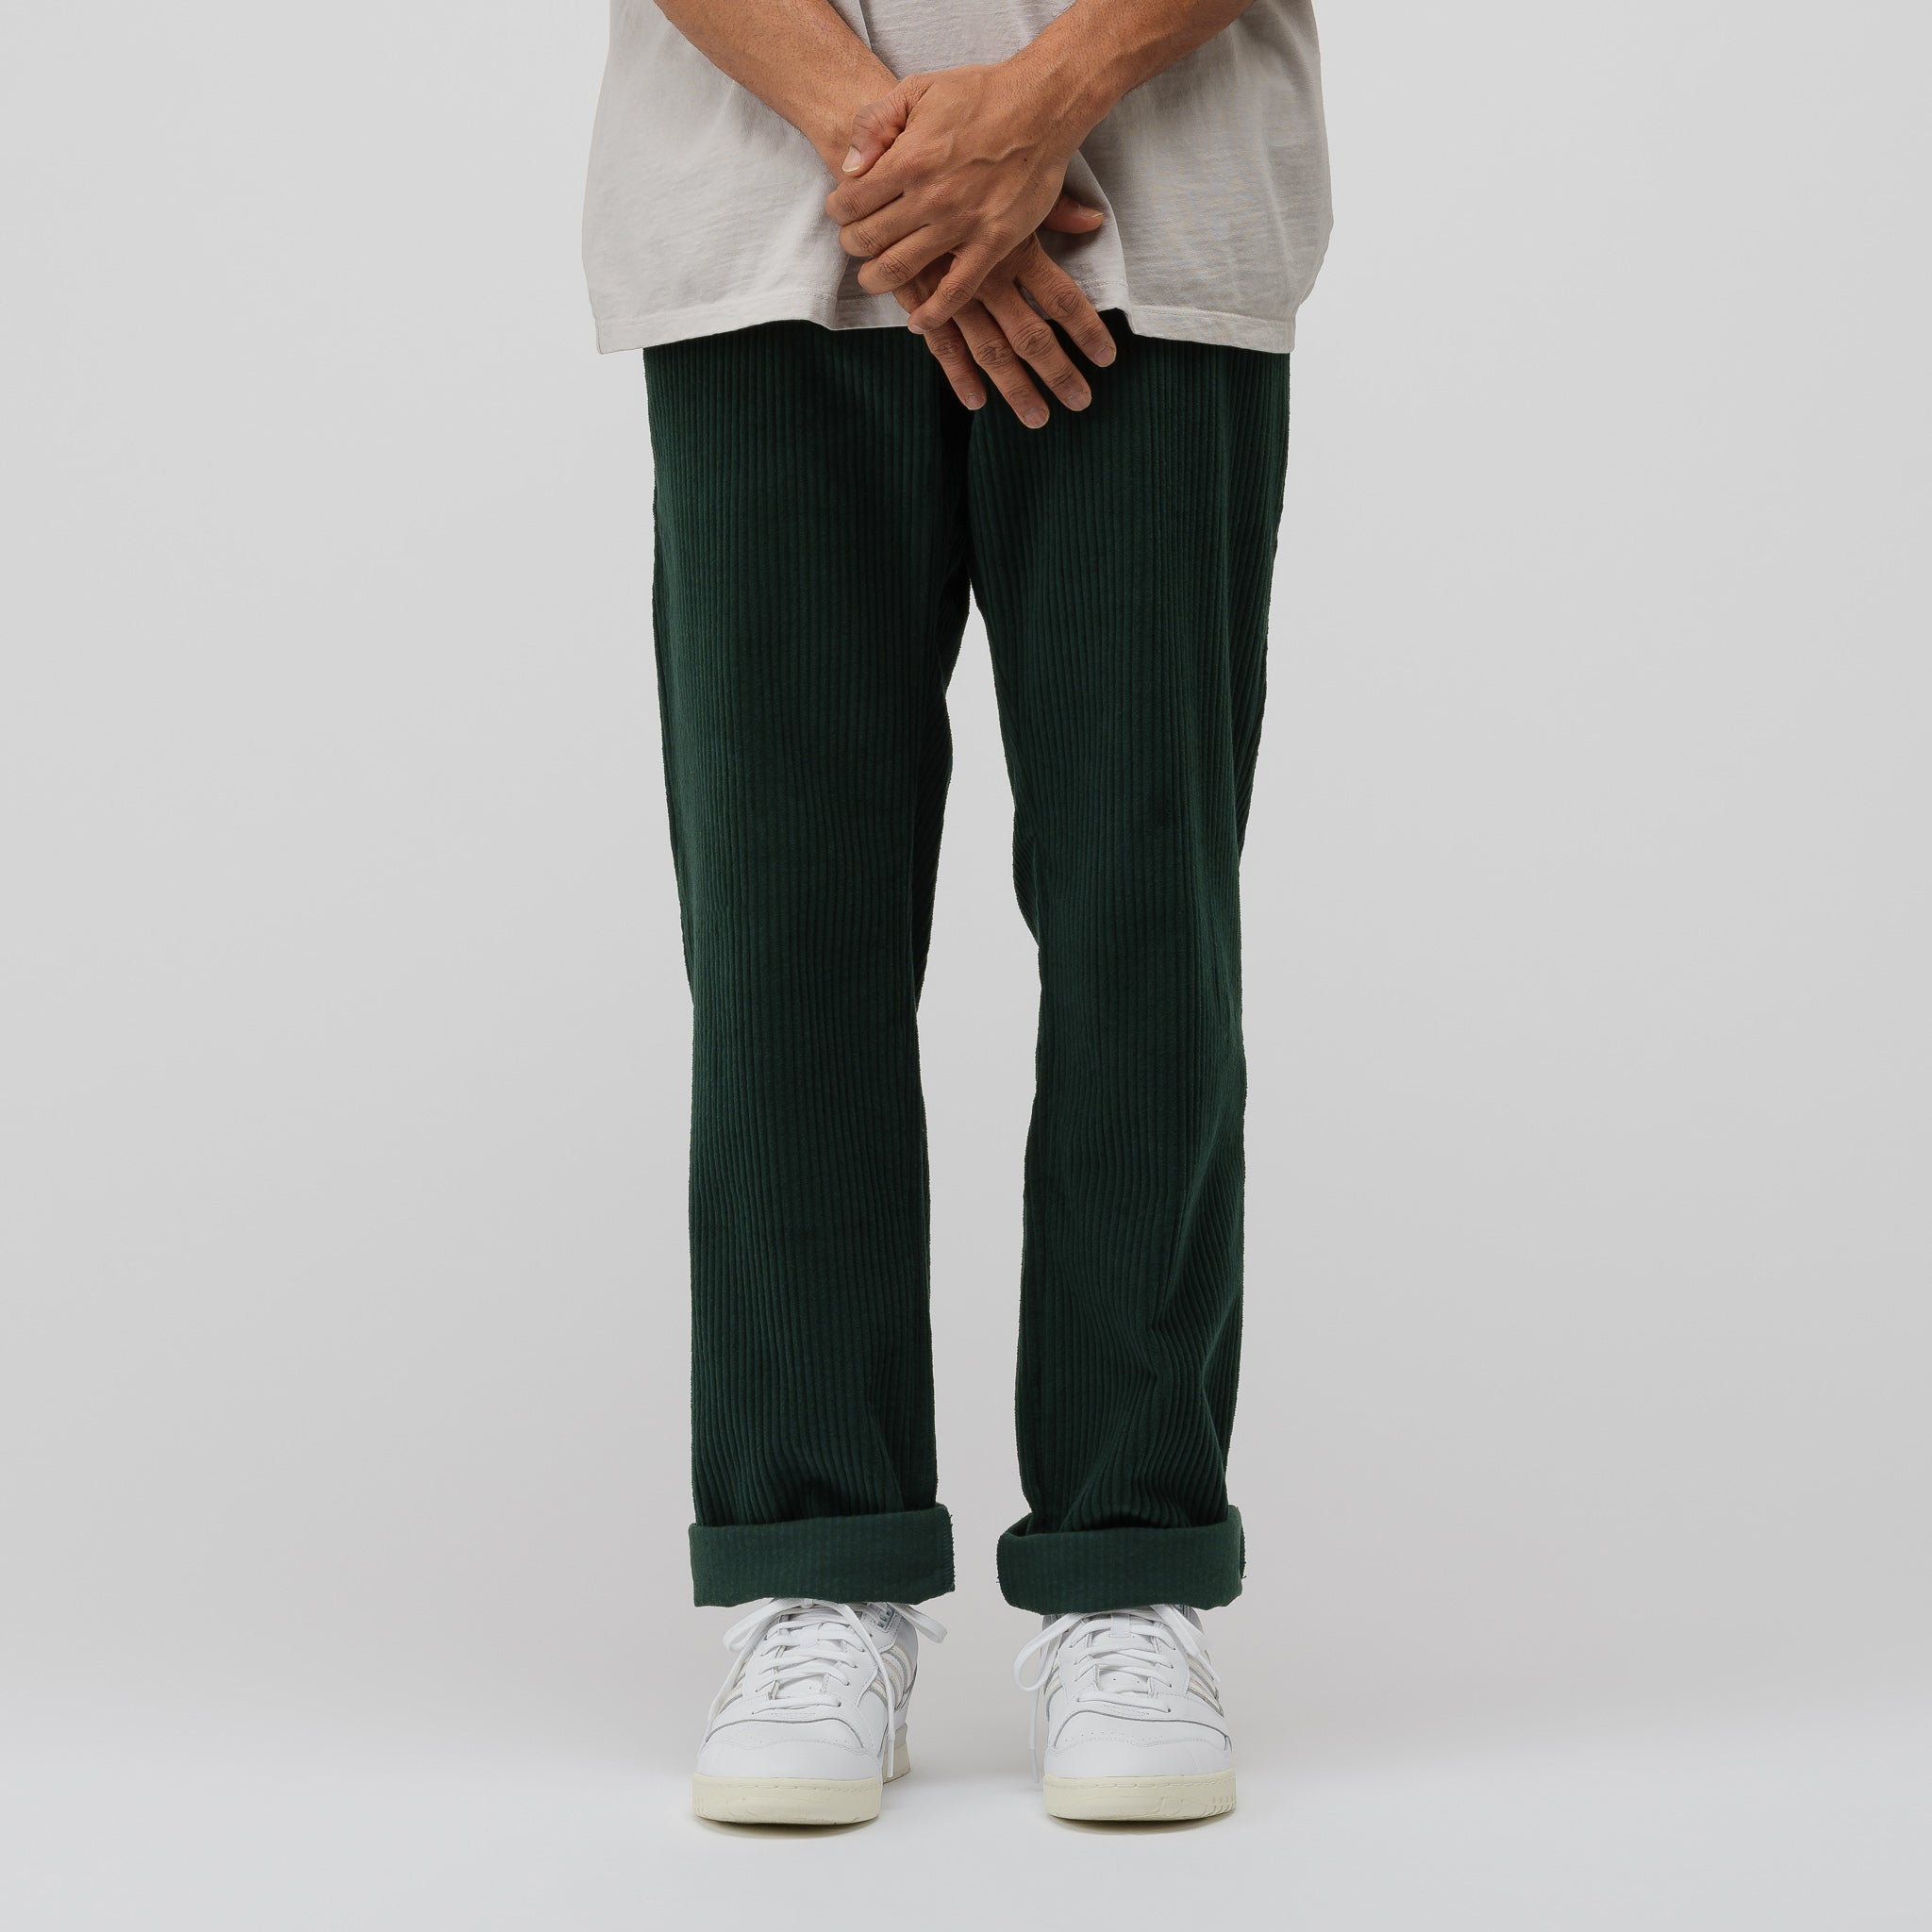 Catalina Cord Pant in Forest Green